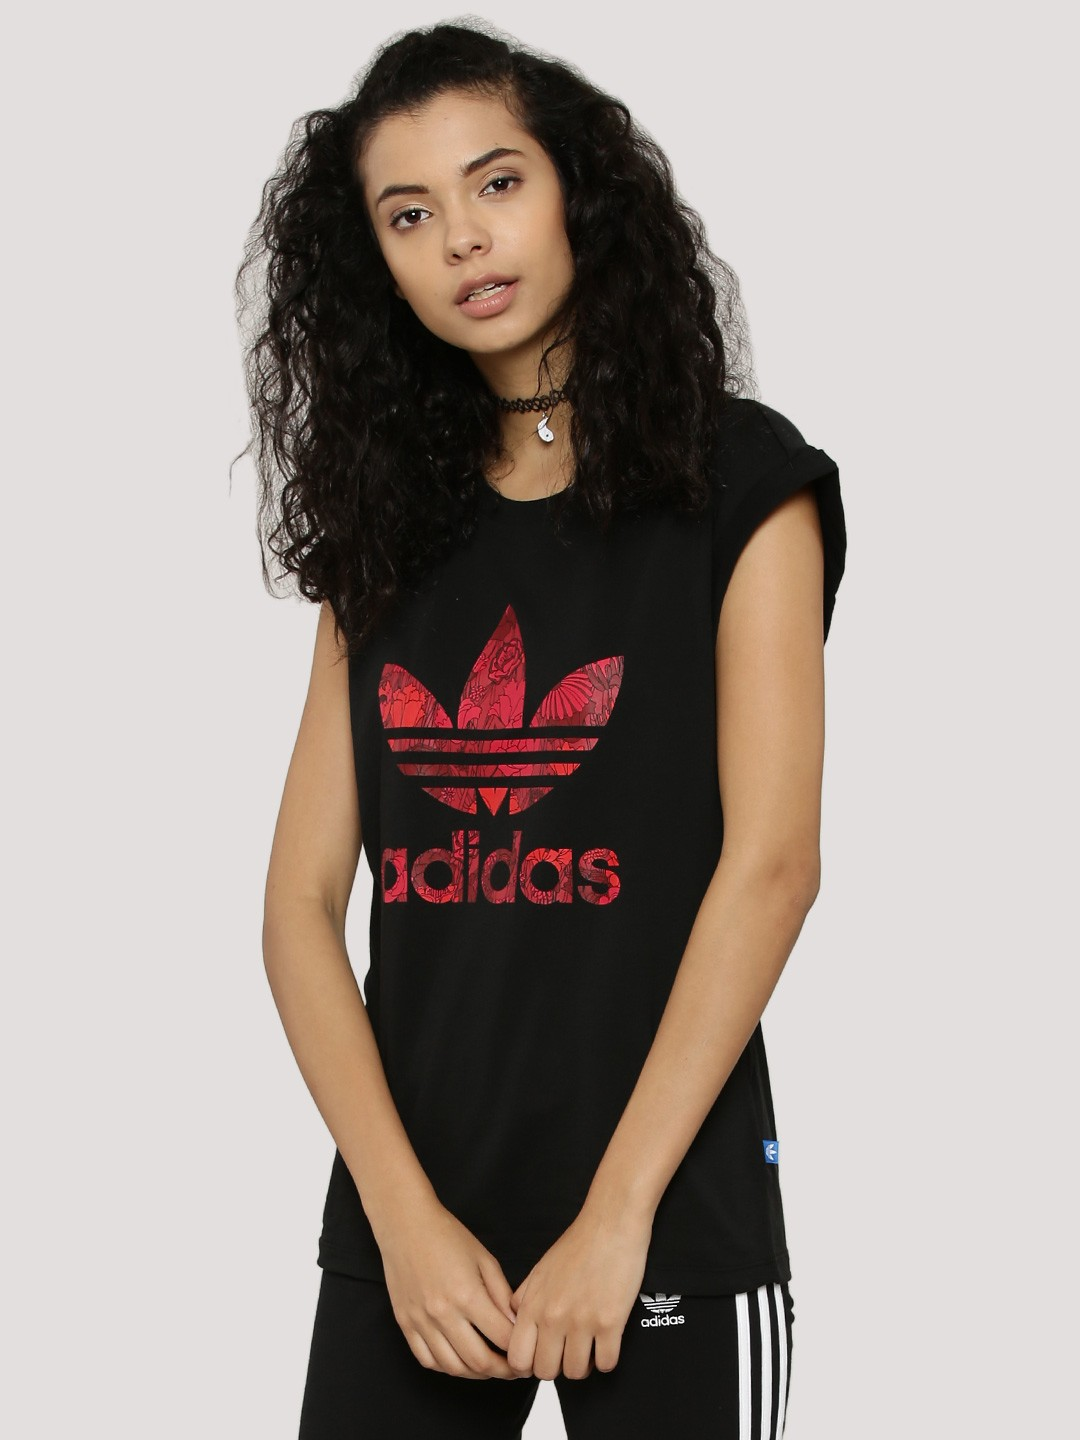 Black t shirt buy online - Adidas Originals Roll Up T Shirt